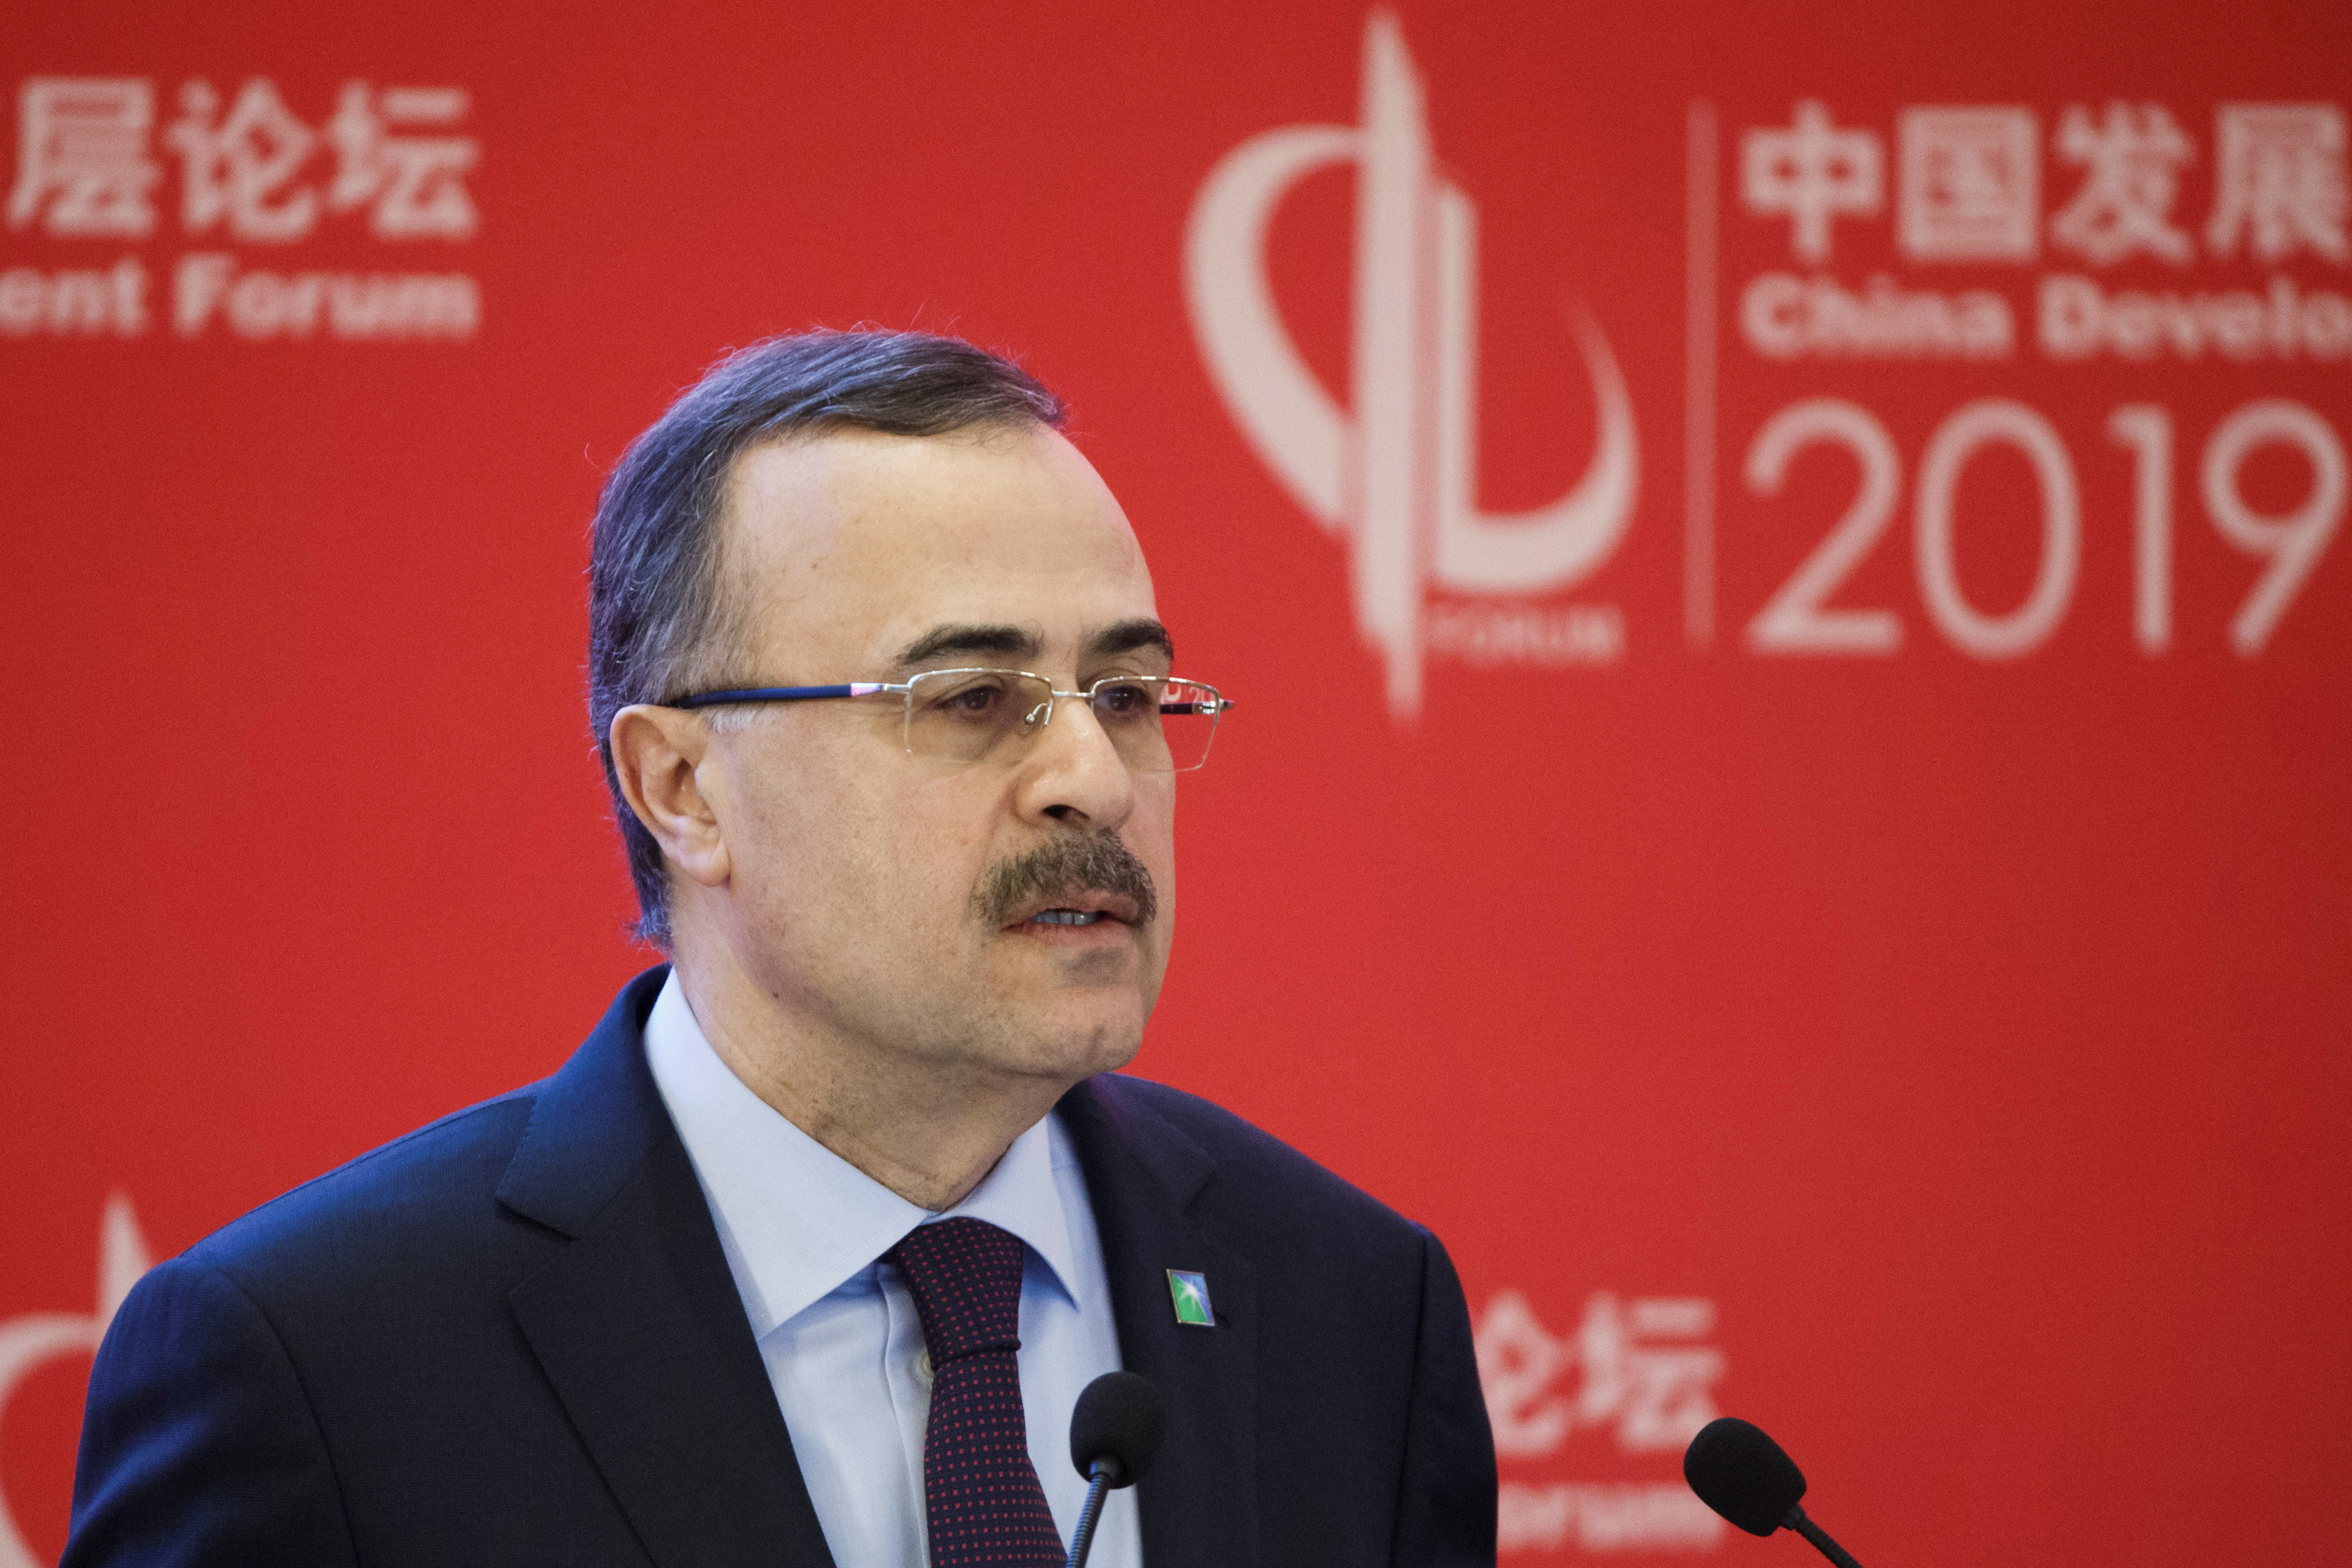 Saudi Aramco CEO Amin H. Nasser attends the China Development Forum in Beijing, China, March 25, 2019. REUTERS/Thomas Peter/File Photo